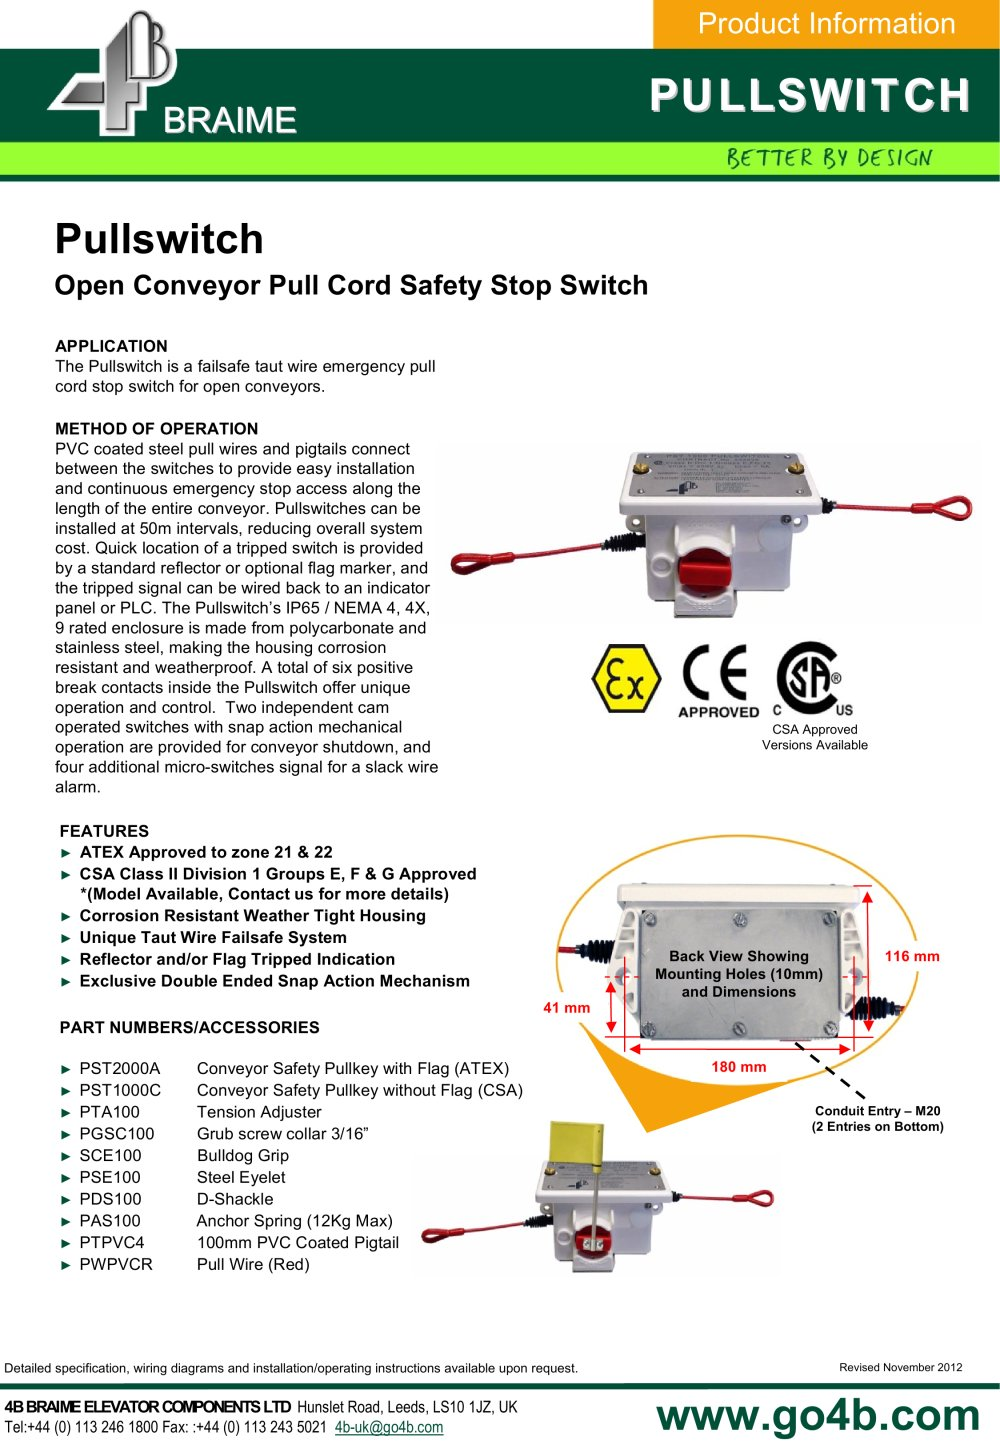 4b pullswitch conveyor safety stop switch 11170_1b 4b pullswitch conveyor safety stop switch 4b braime components conveyor pull cord switch wiring diagram at readyjetset.co